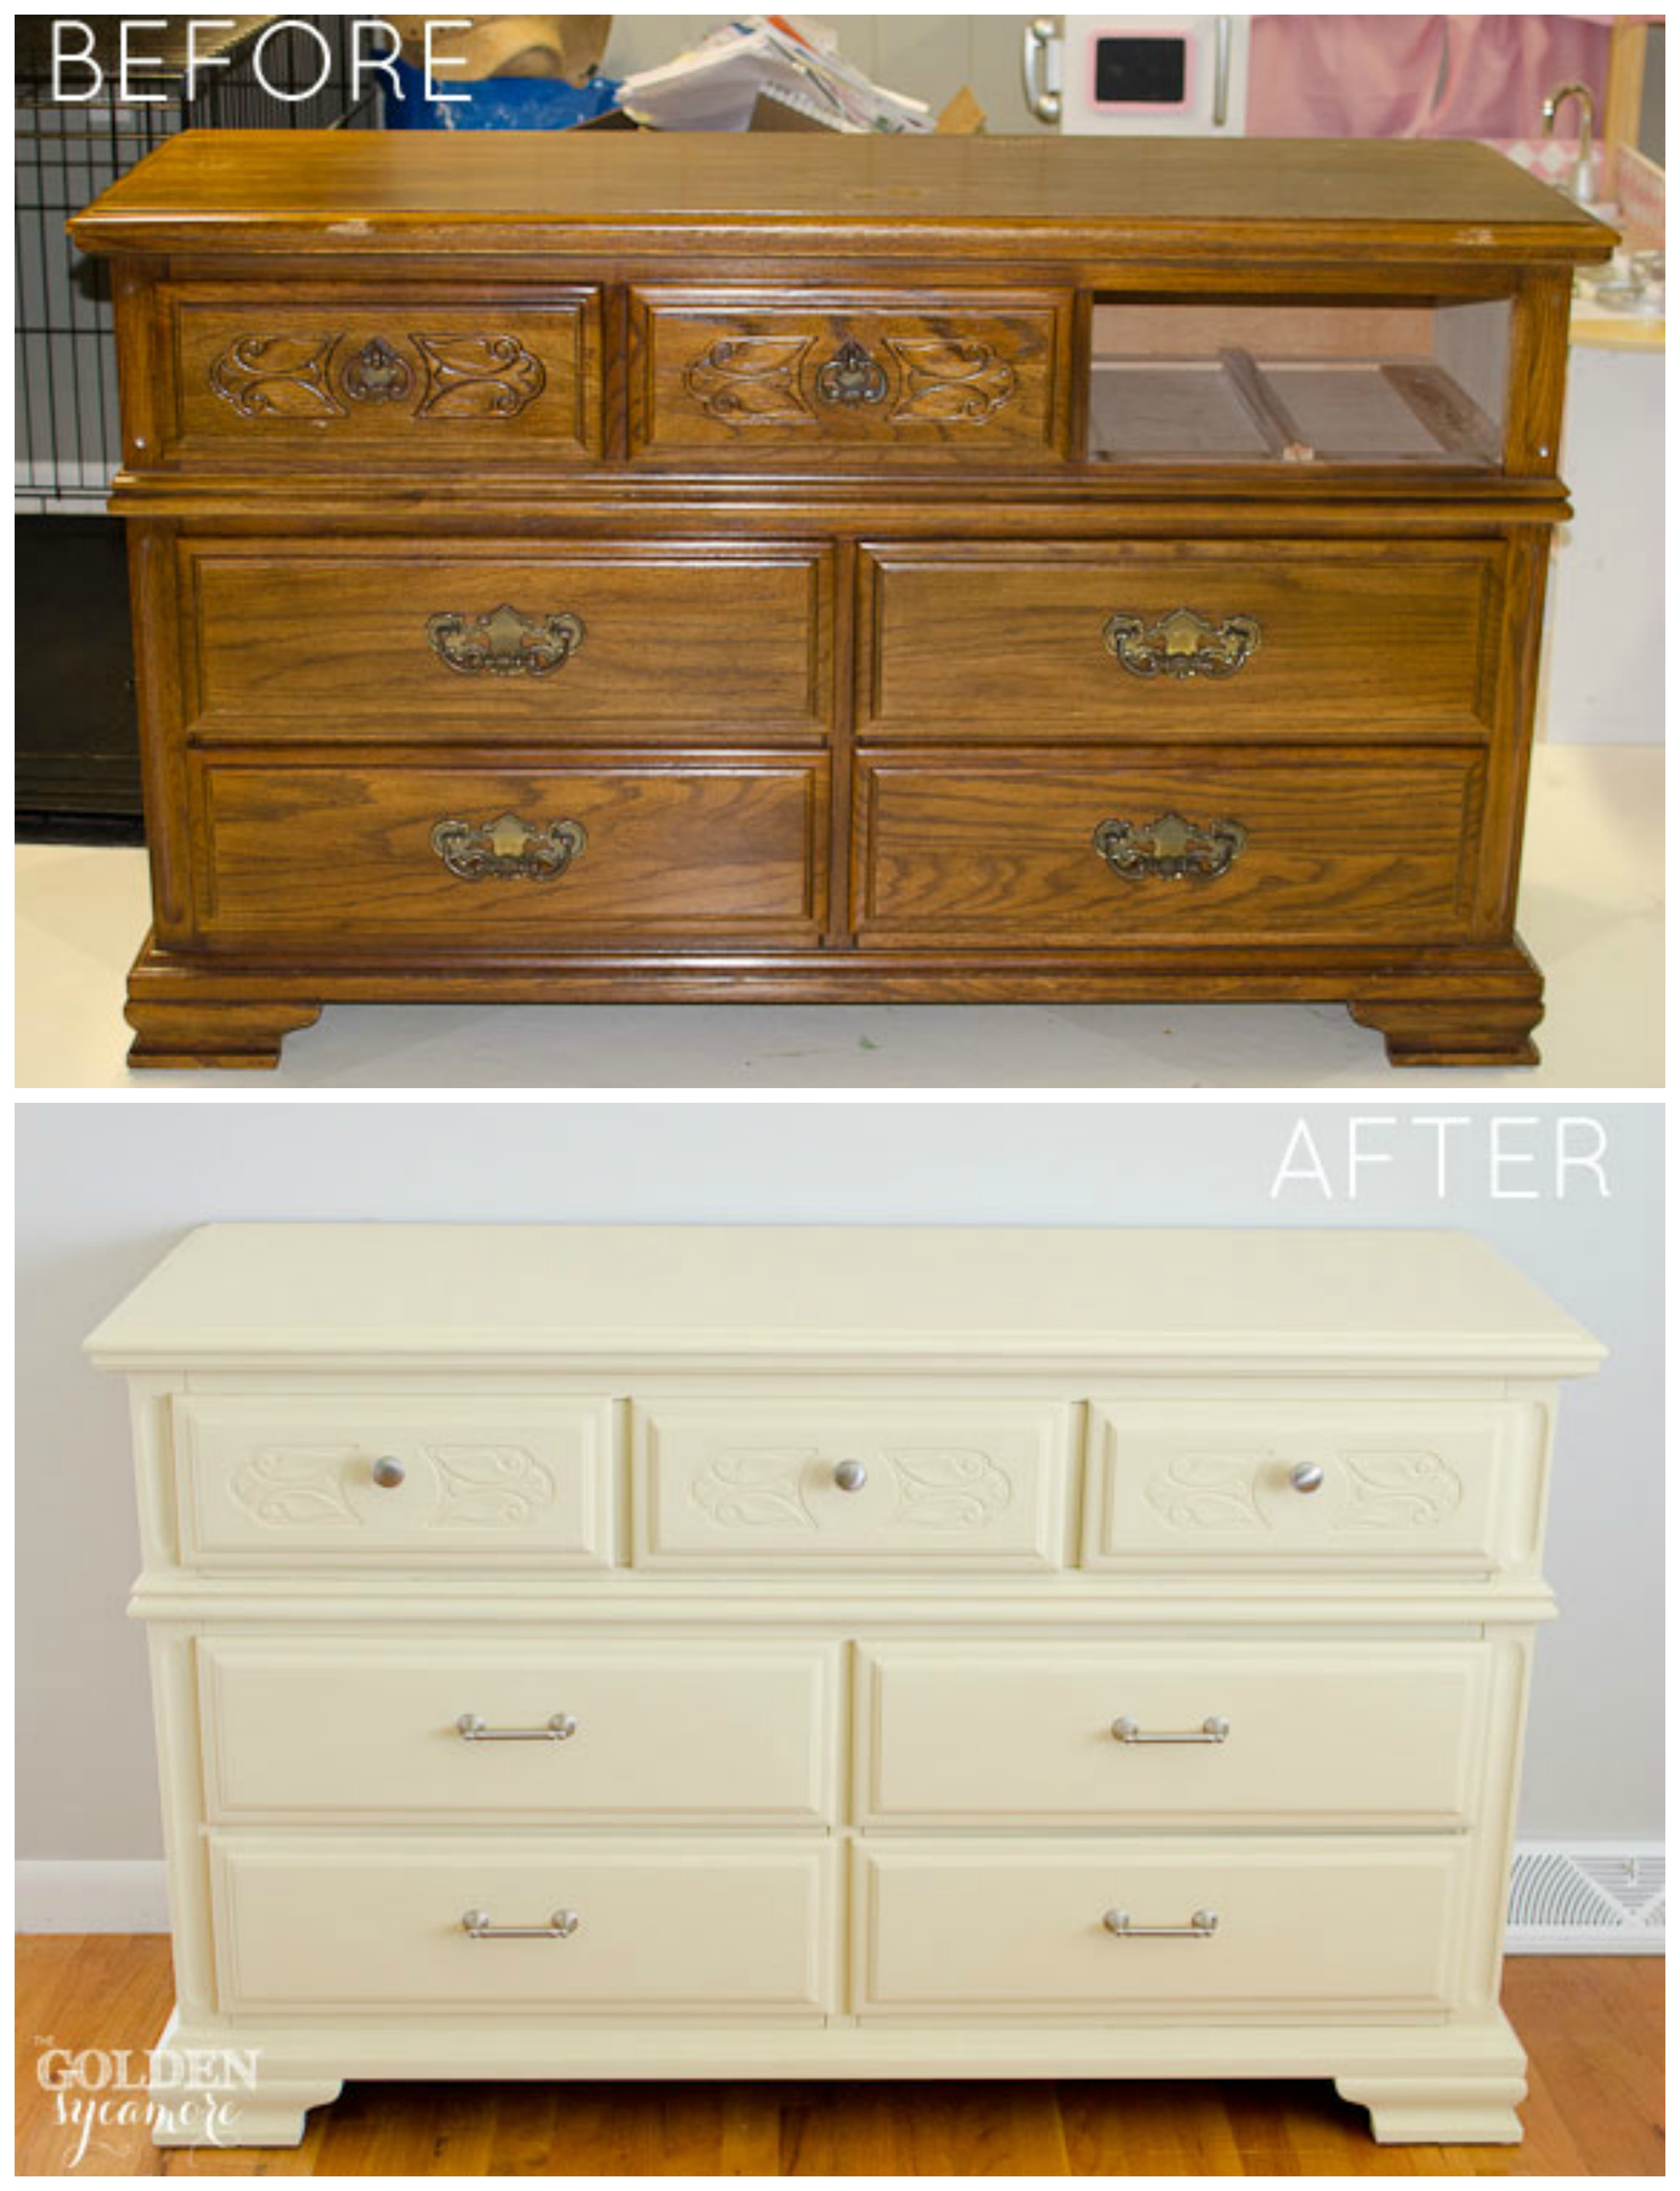 How To Paint Furniture How To Give Old Furniture A Modern Look With Chalk Paint®  The